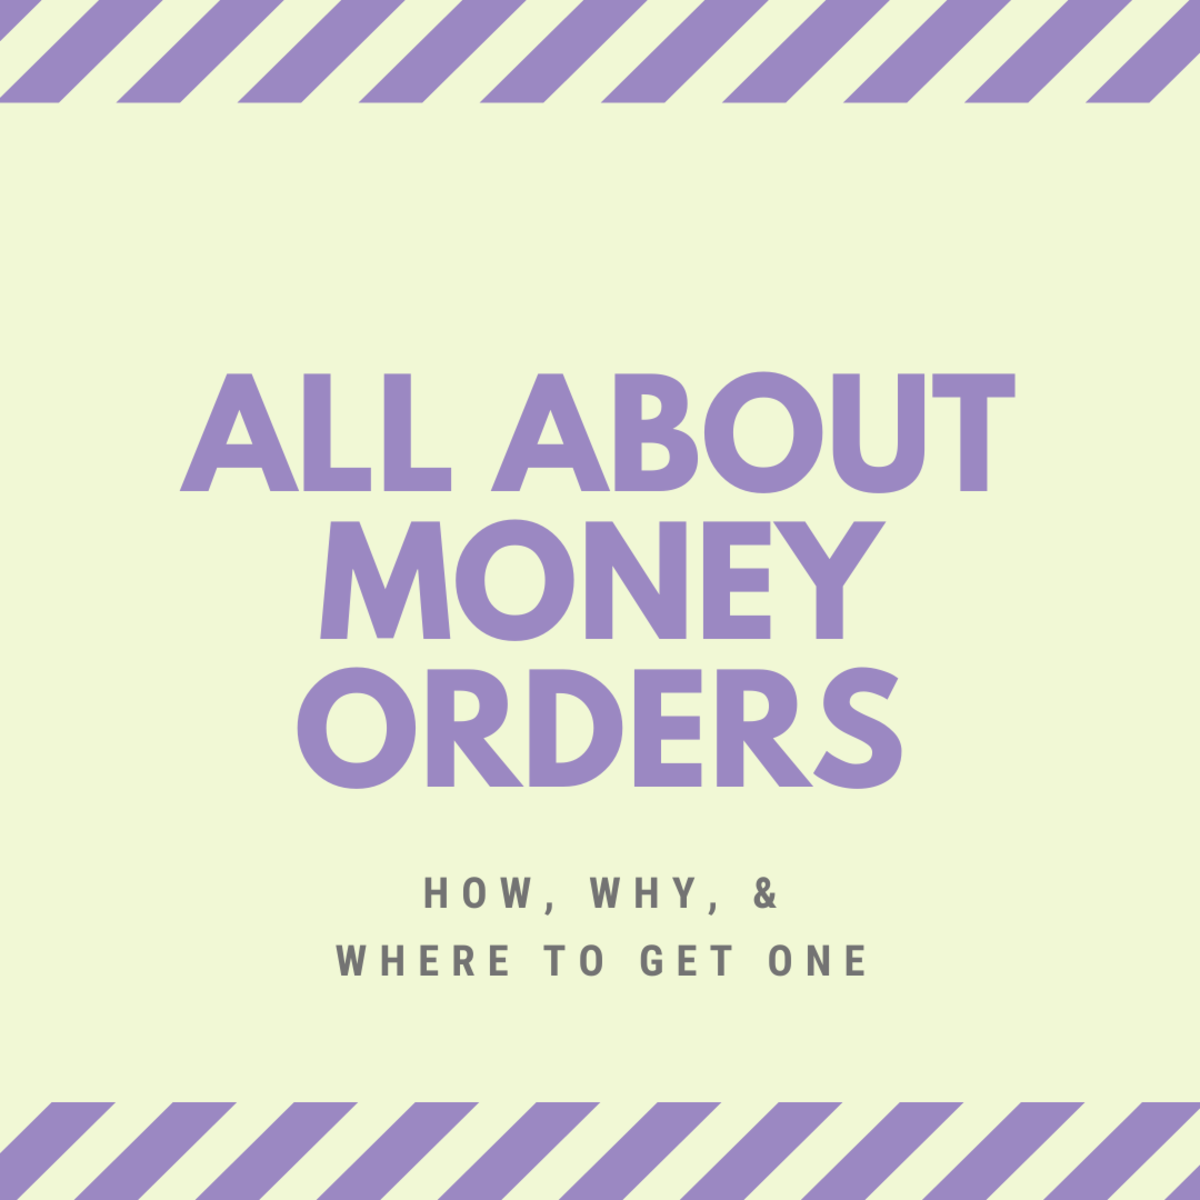 This guide will help you with key facts and information about money orders.